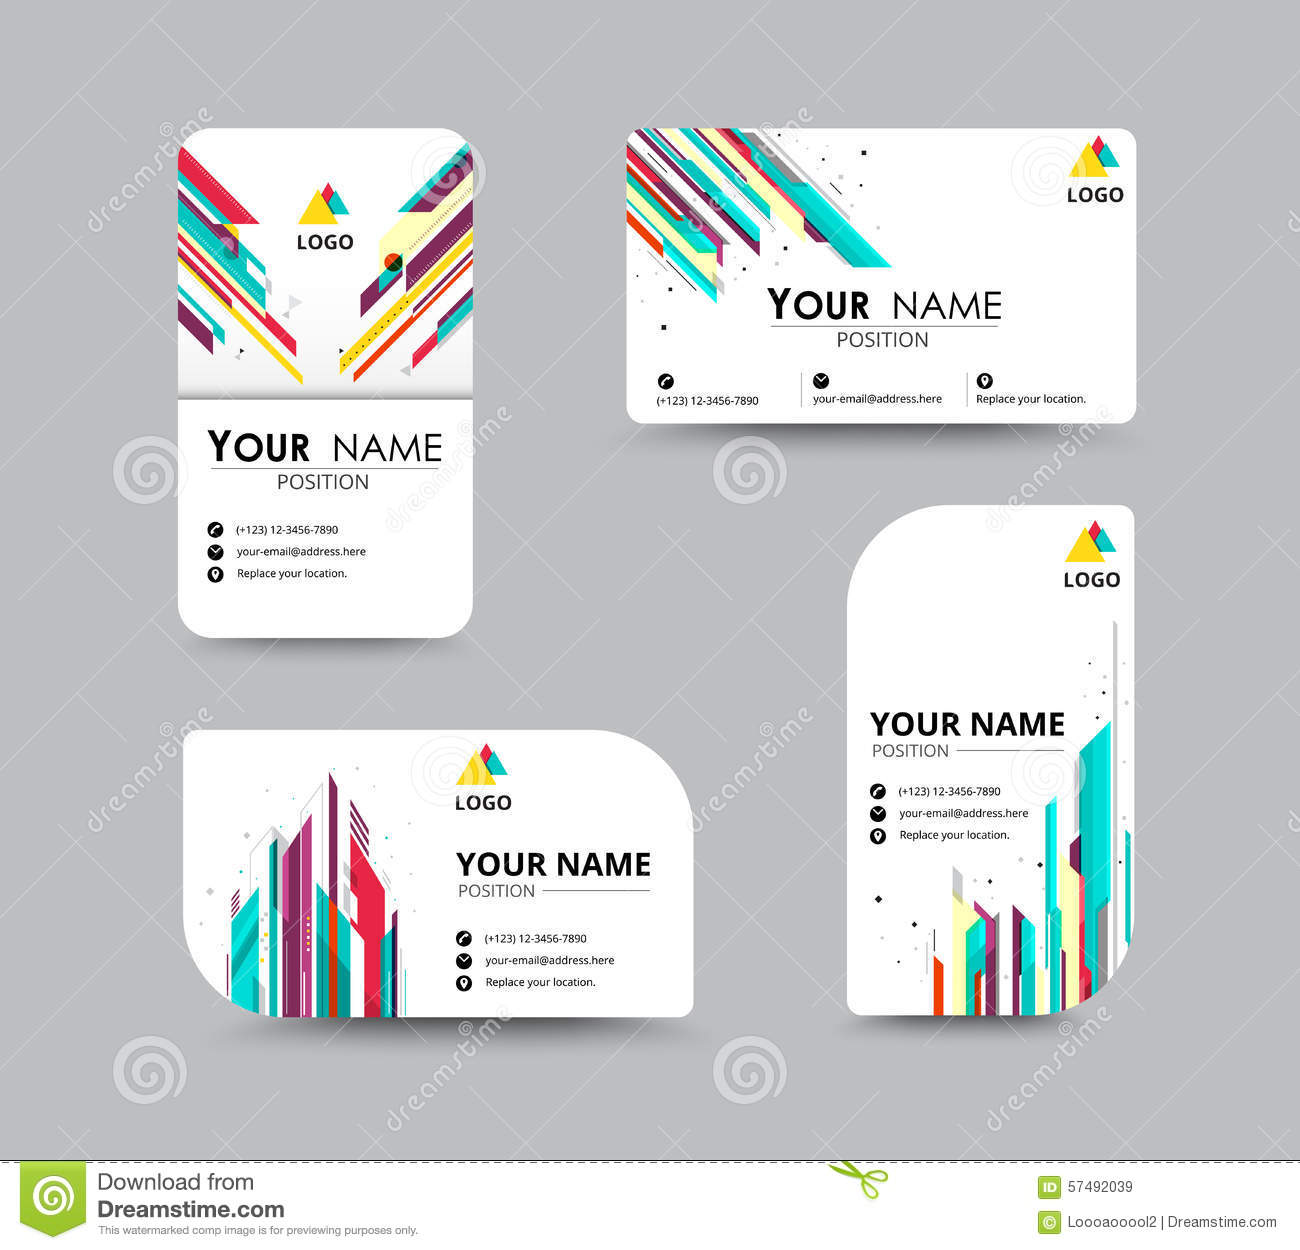 Abstract Business Card Template With Sample Name Position. City ...